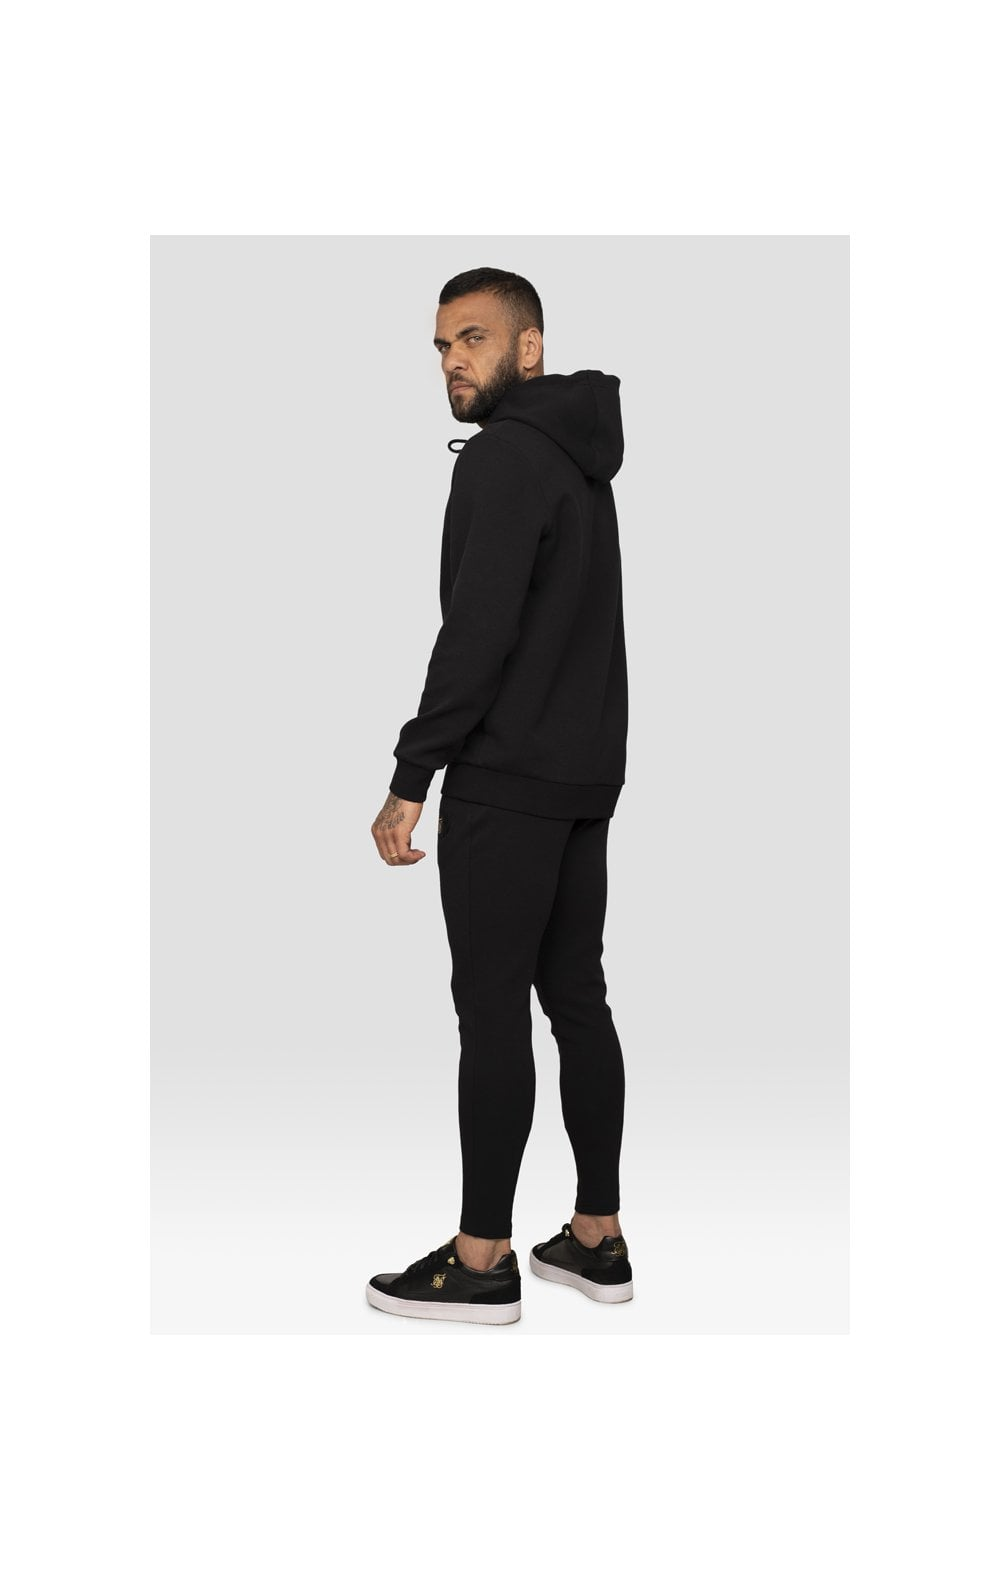 Load image into Gallery viewer, SikSilk x Dani Alves Muscle Fit Overhead Hoodie – Black (3)